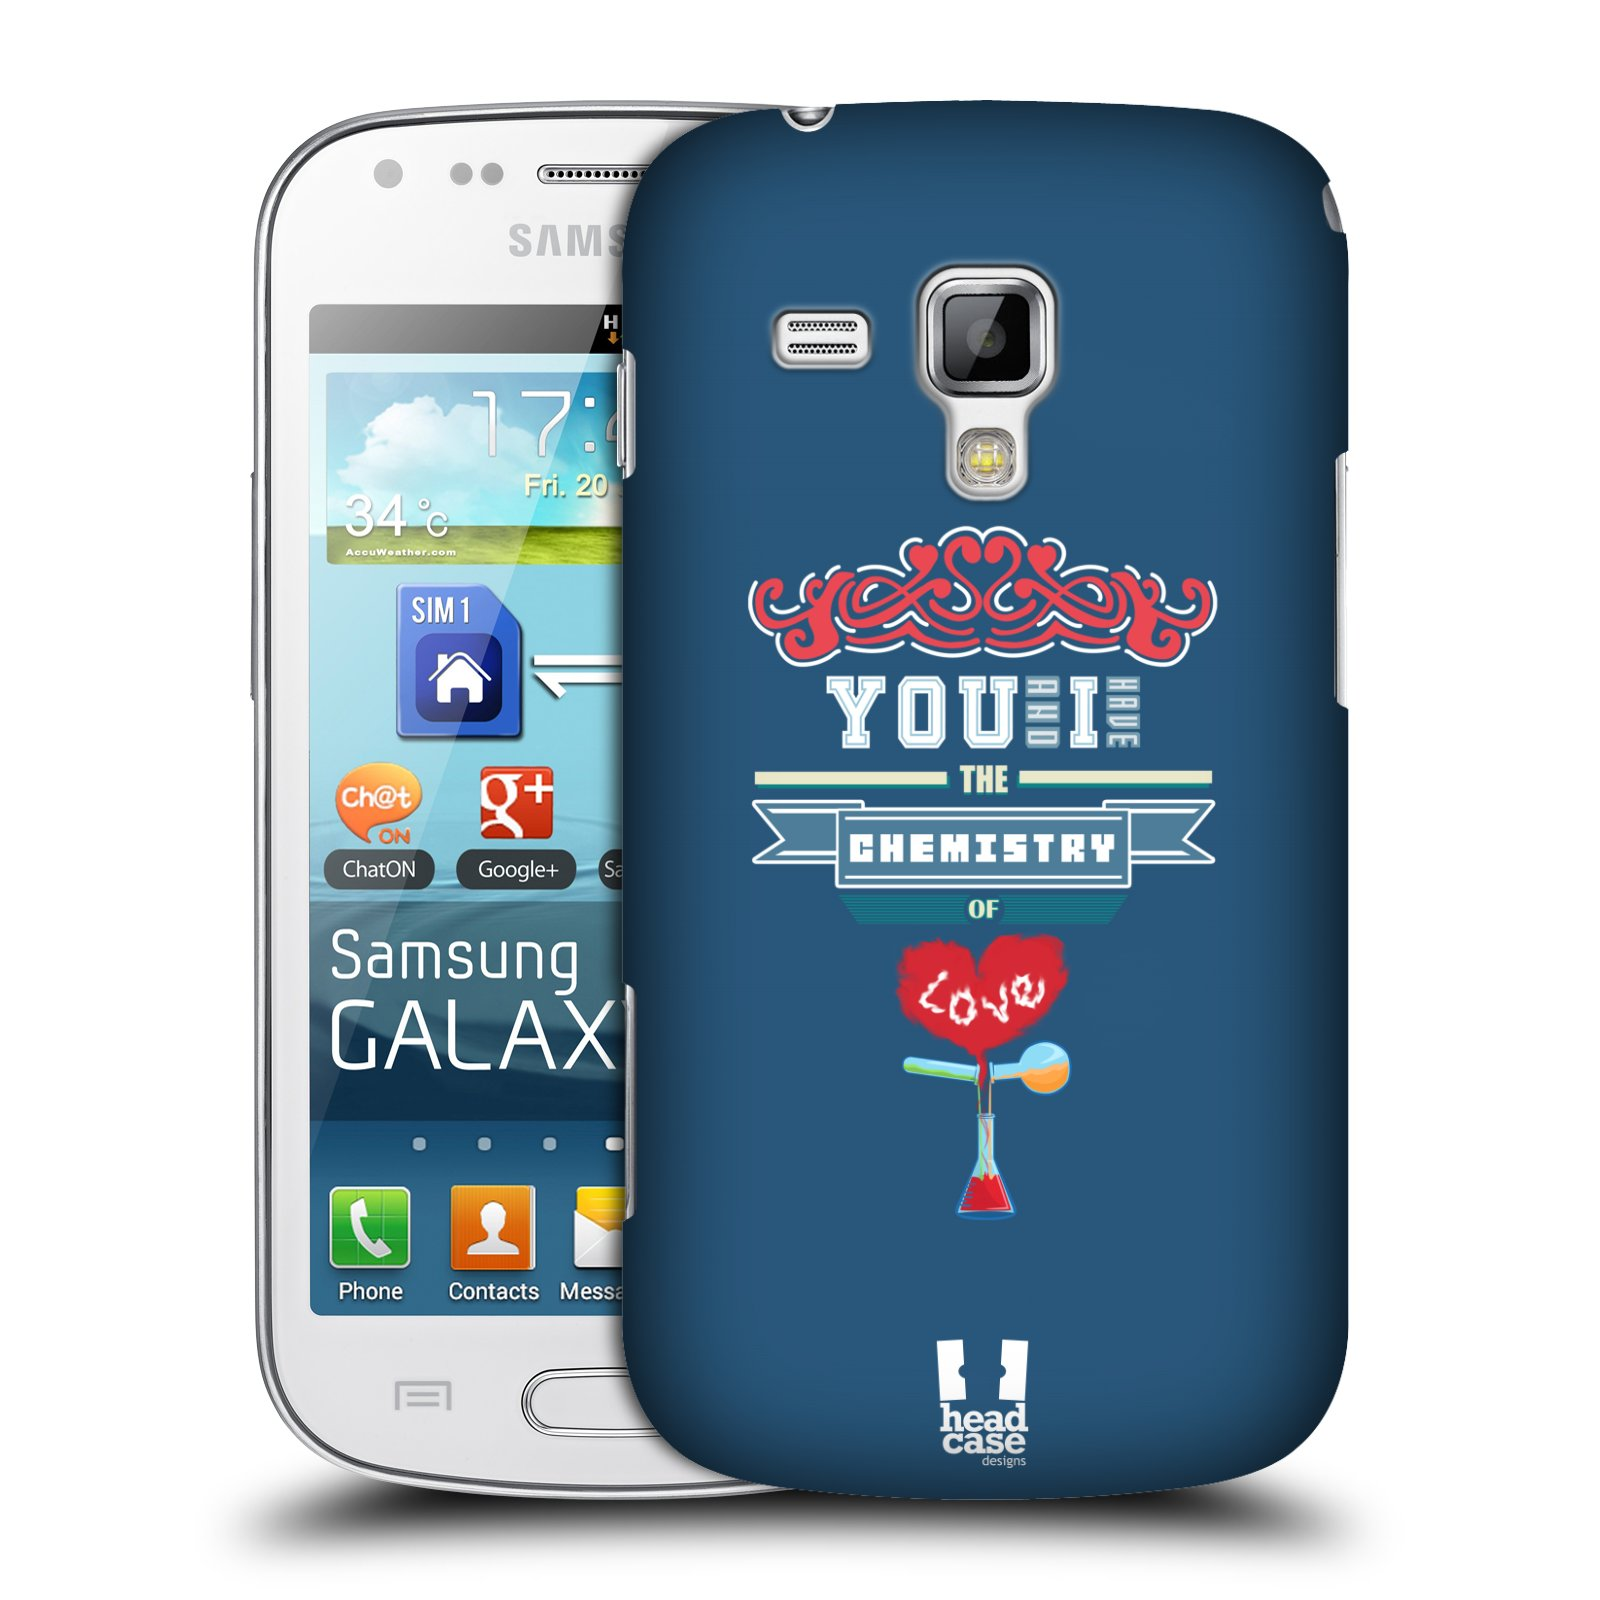 HEAD CASE SCIENTIFIC PICK-UP LINES COVER FOR SAMSUNG GALAXY TREND S7560